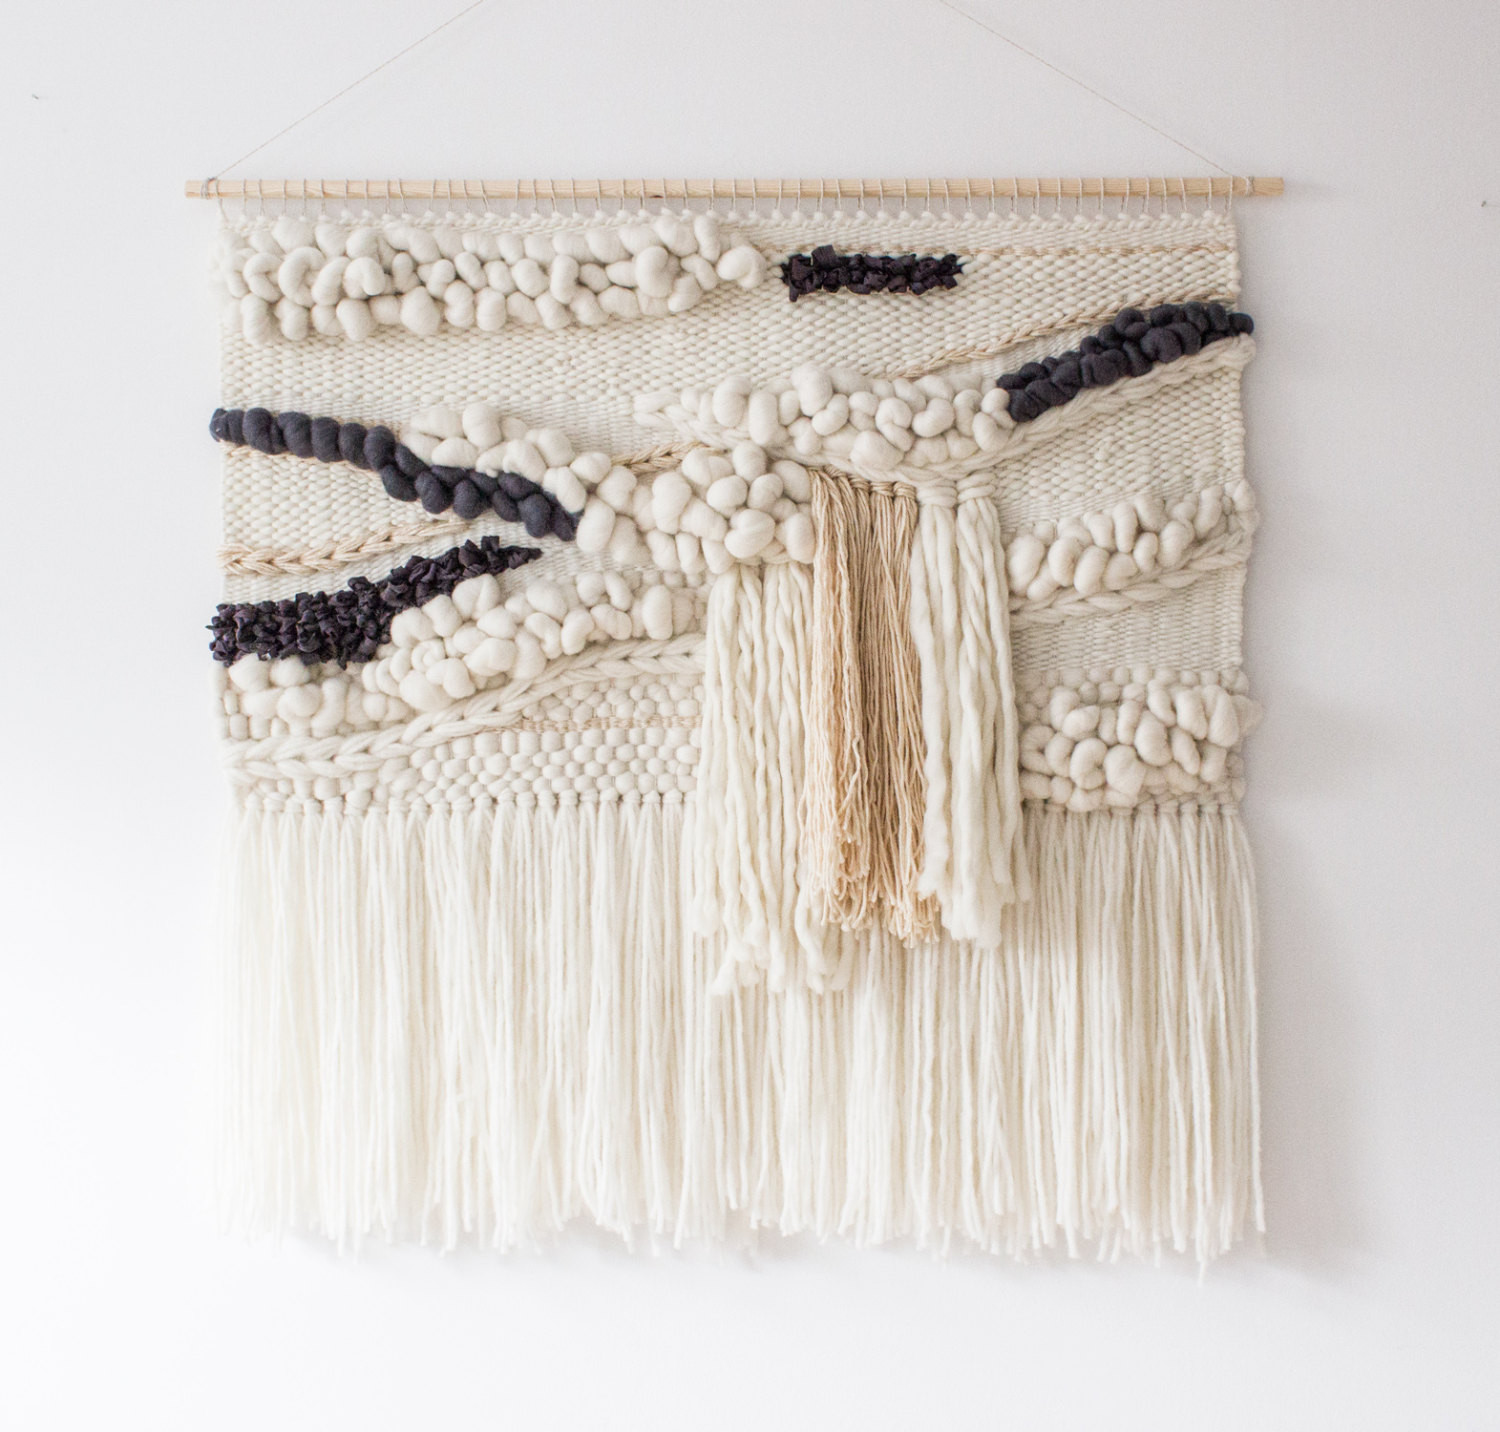 Best ideas about Woven Wall Art . Save or Pin Extra large woven wall hanging Woven wall art tapestry Now.